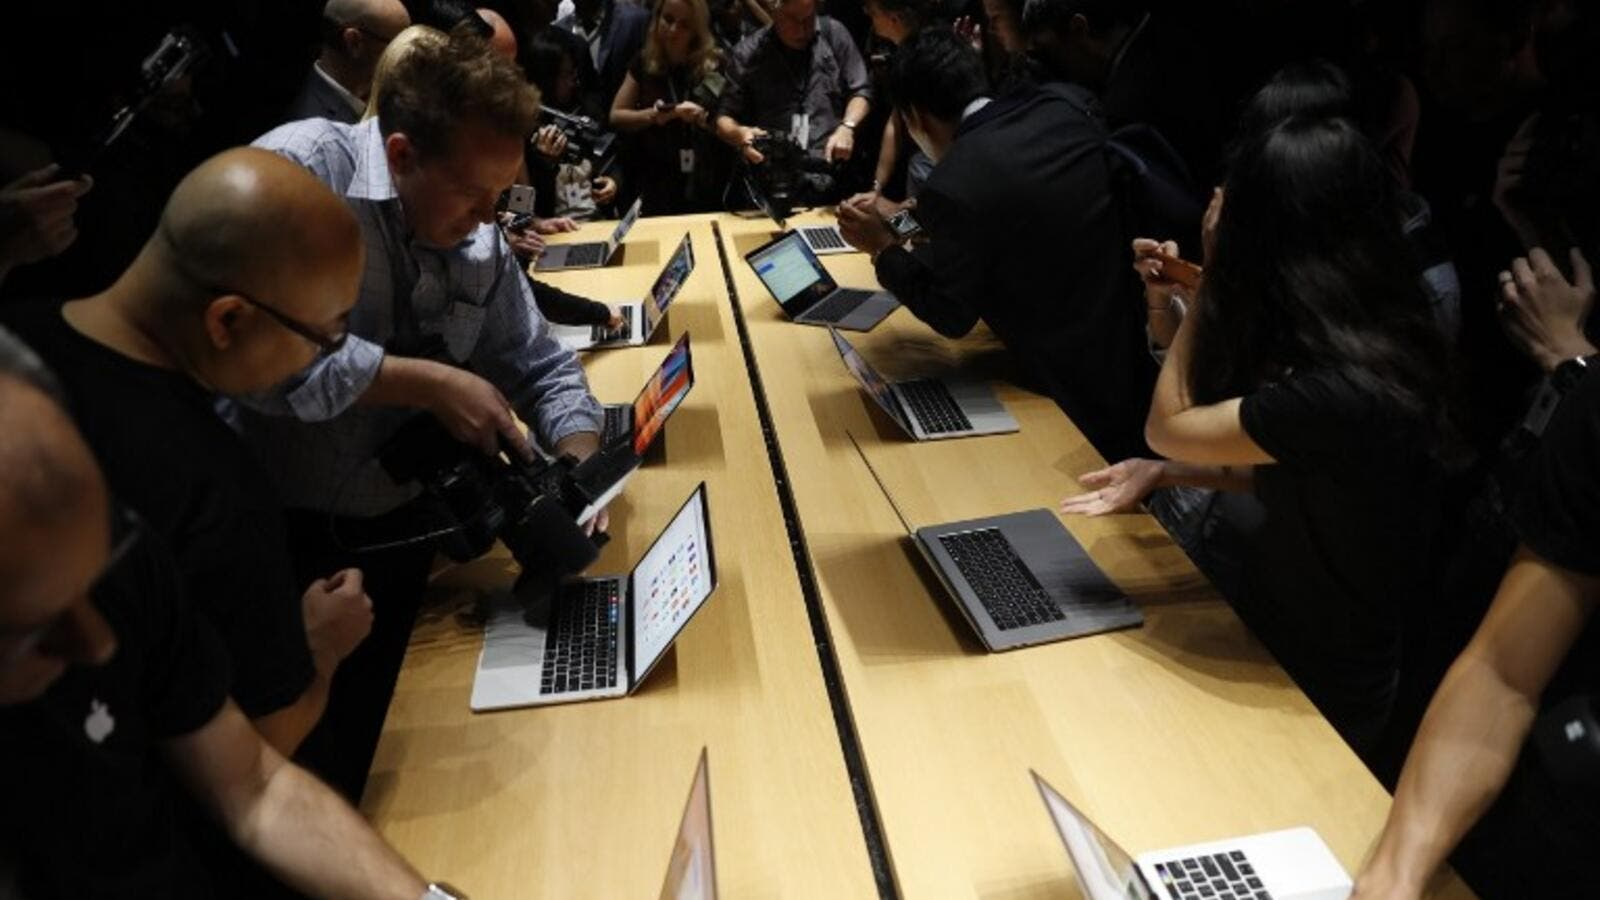 Members of the media gather around a table displaying the new Apple MacBook Pro laptop after the product launch event on October 27, 2016 in Cupertino, California. (AFP/Stephen Lam)